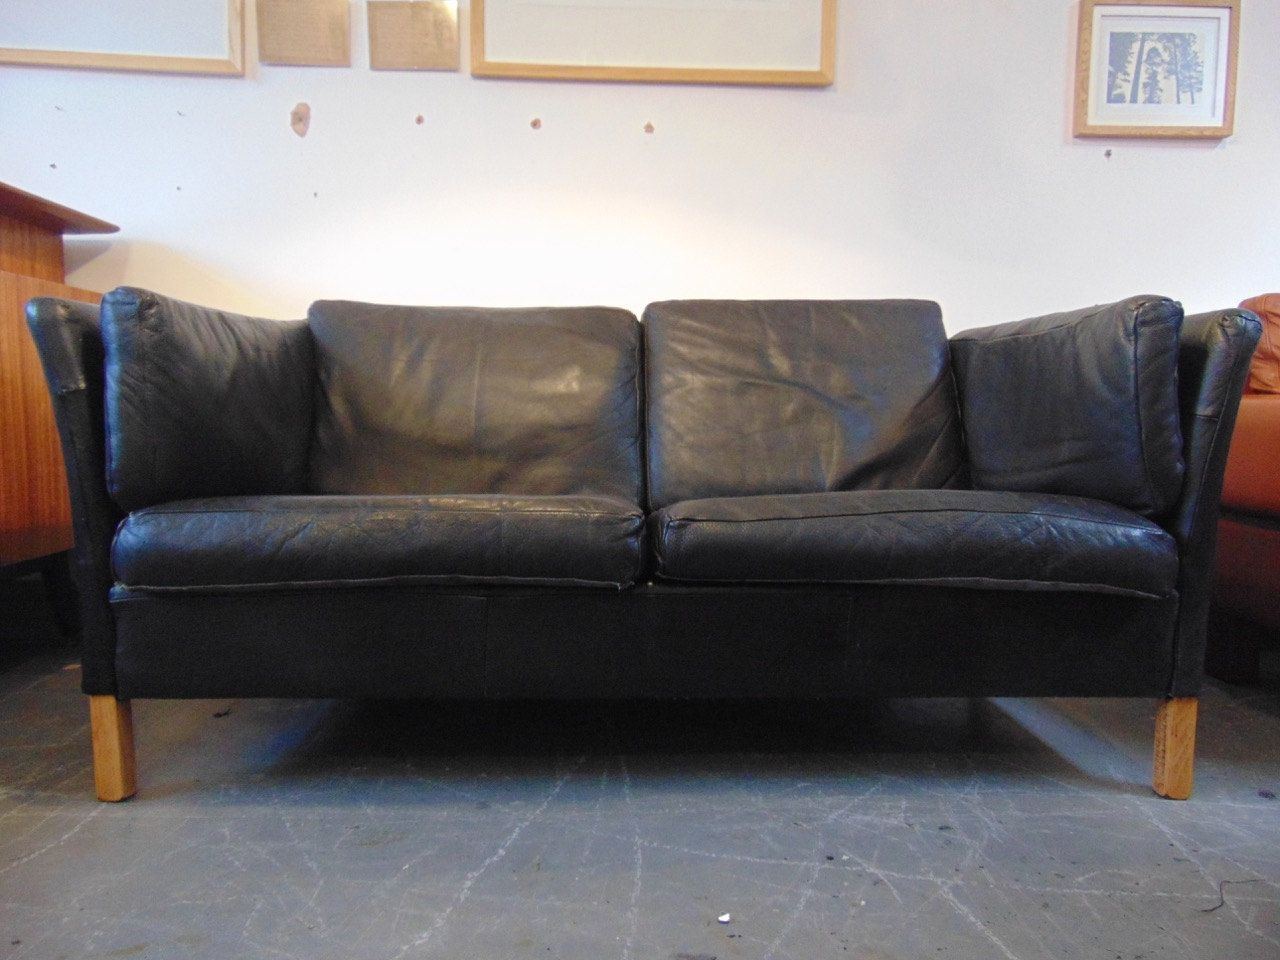 Vintage 1960u0027s Danish Black Leather Two Seater Sofa In The Style Of Borge  Mogensen 2212 Design